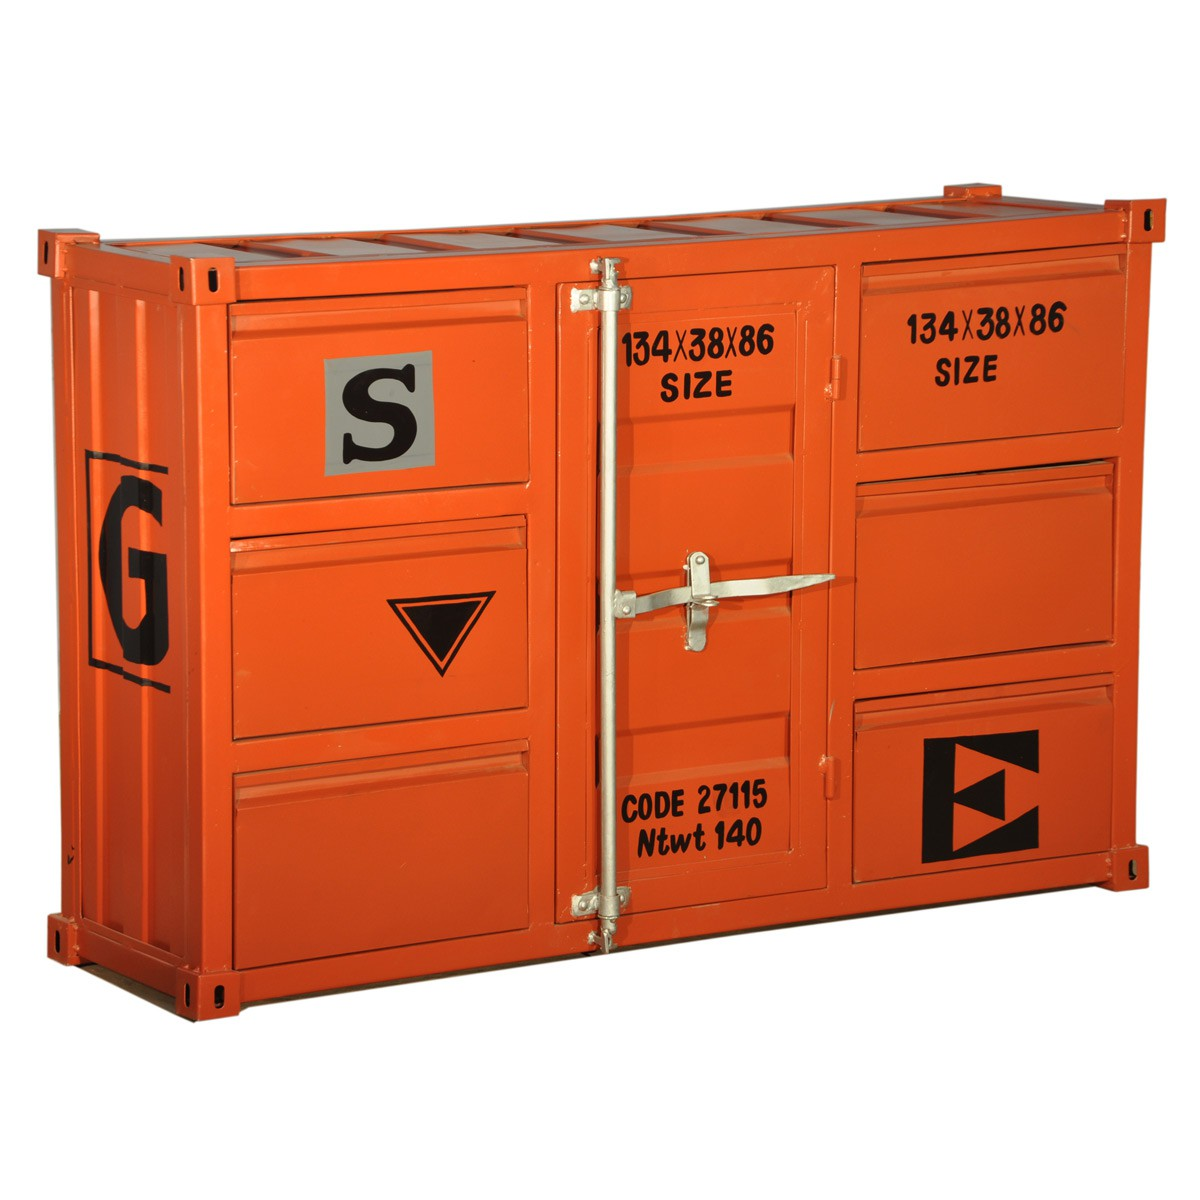 Ts Ideen Kommode Schrank Roll Container Shabby Orange Gelb Industrie